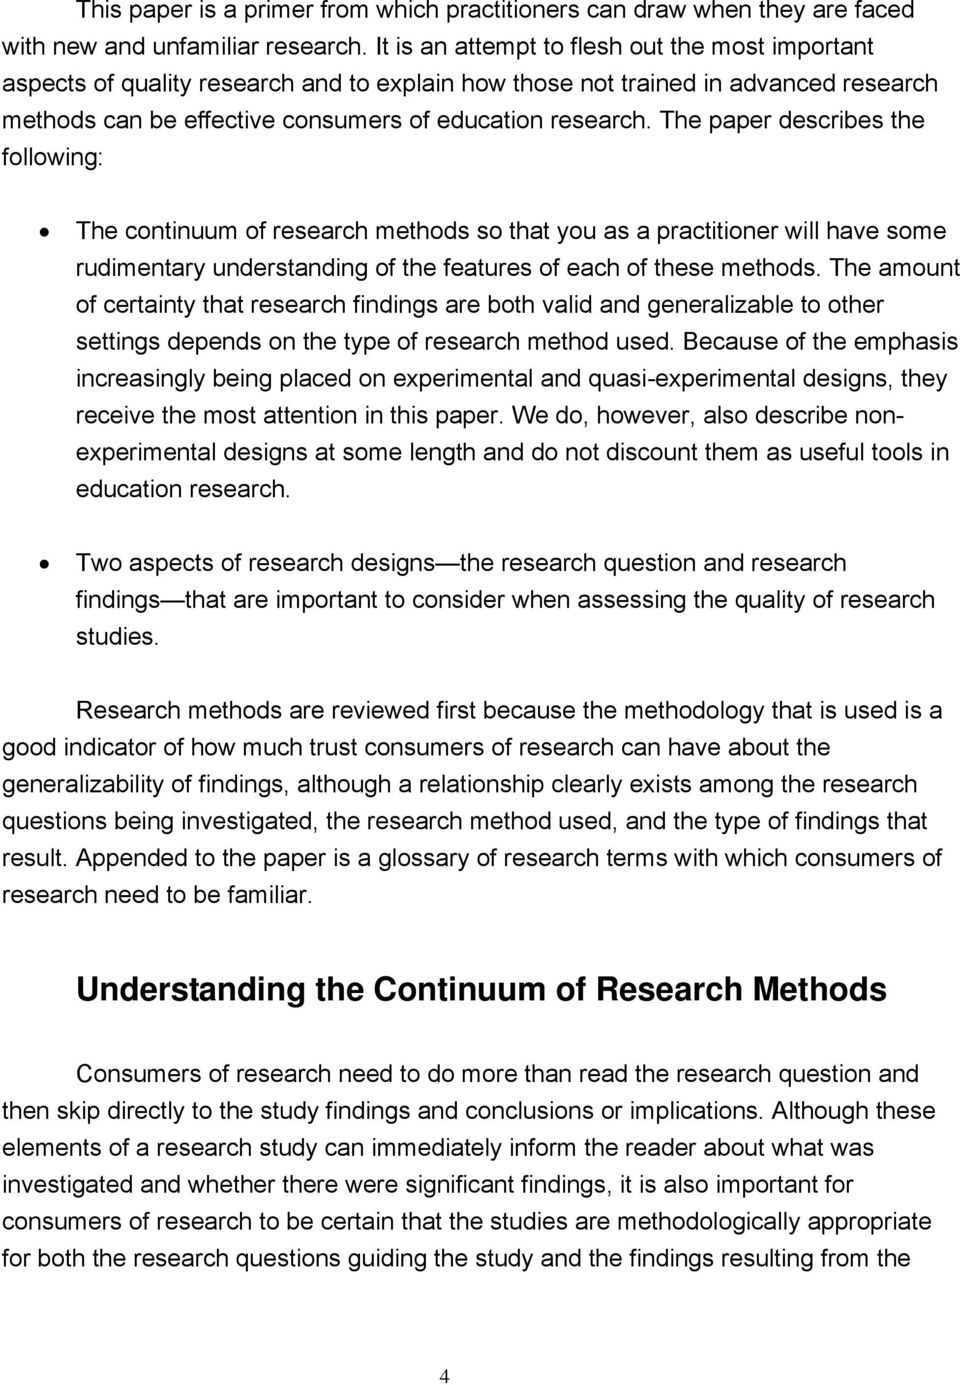 The paper describes the following: The continuum of research methods so that you as a practitioner will have some rudimentary understanding of the features of each of these methods.